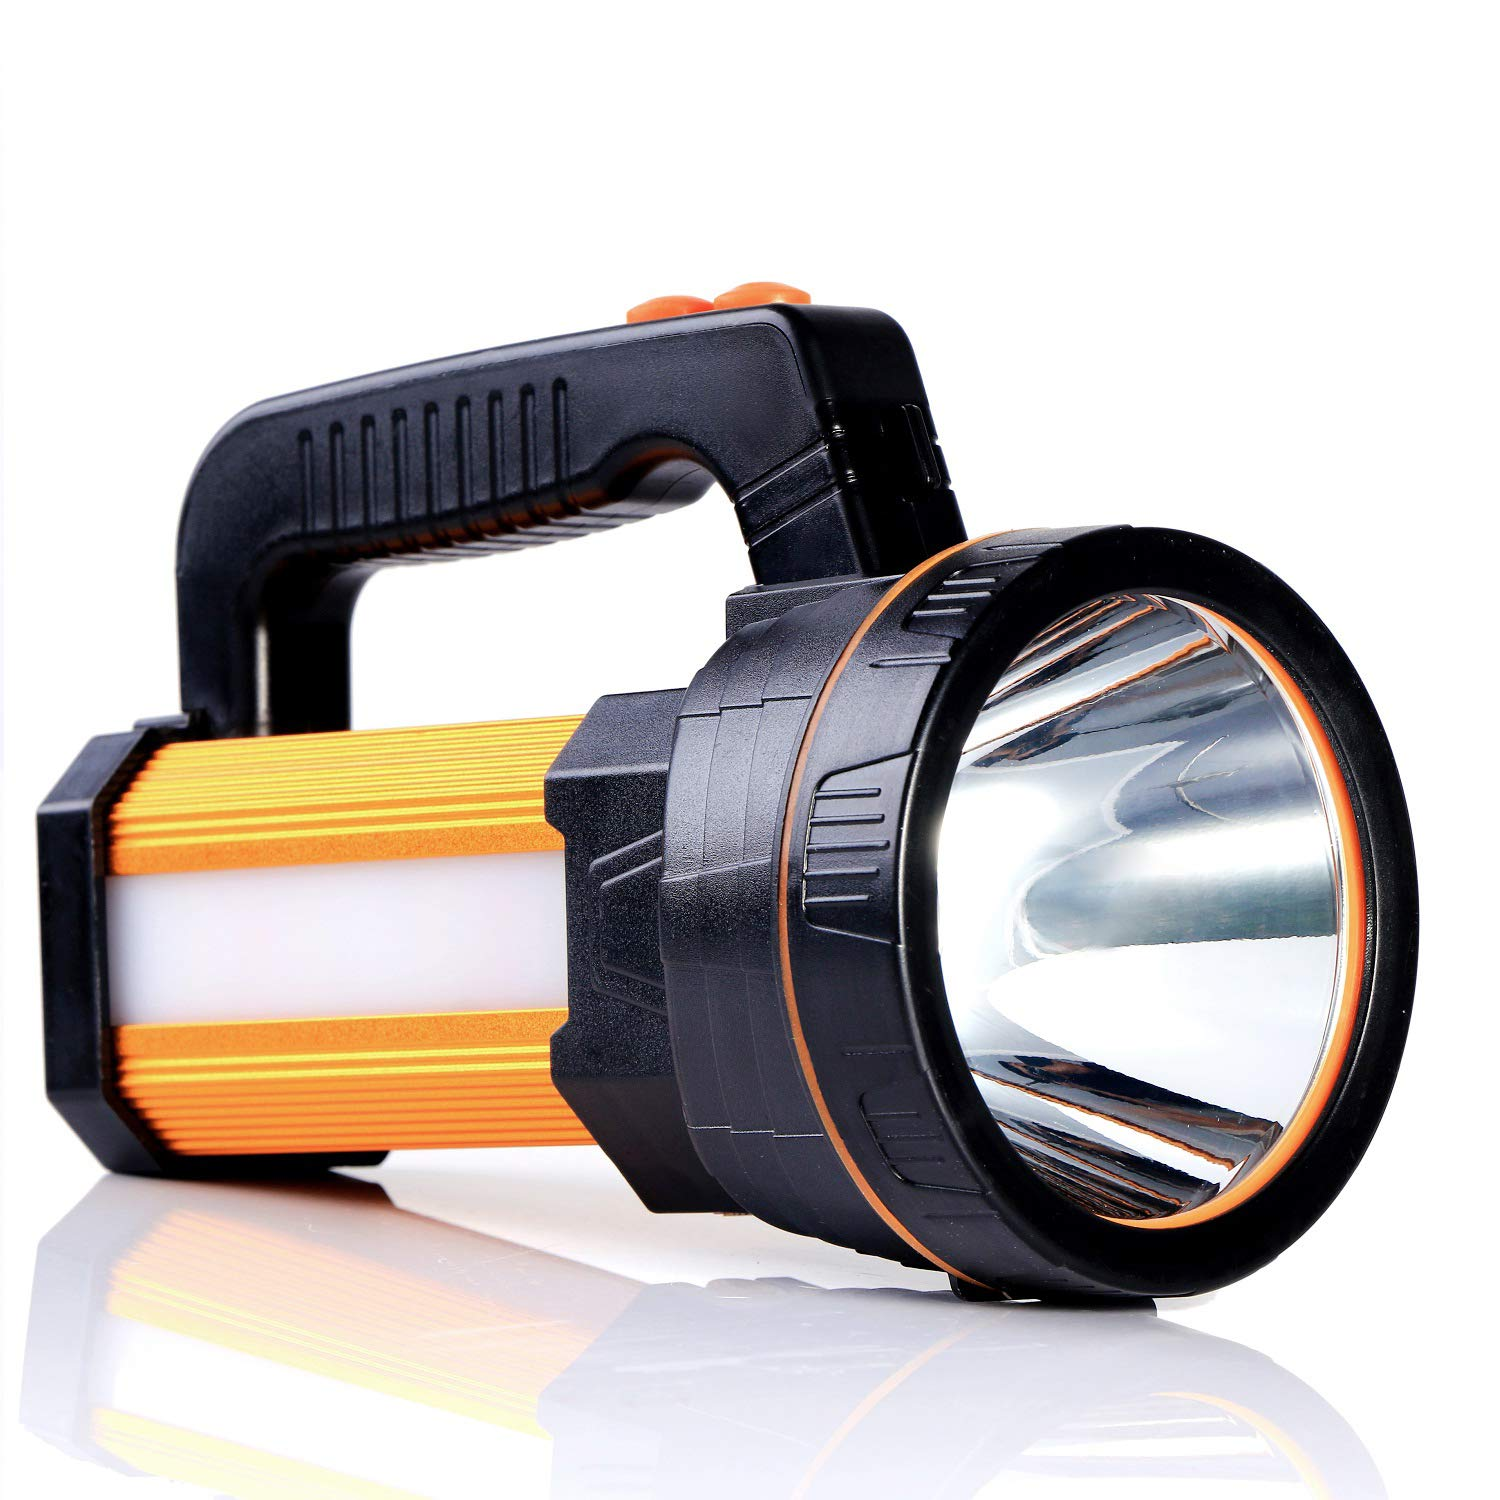 CSNDICEBright Rechargeable Searchlight Handheld LED Flashlight Tactical Flashlight with Handle CREE L2 Spotlight 6000 Lumens Ultra-Long Standby Electric Torch with USB Output as a Power Bank